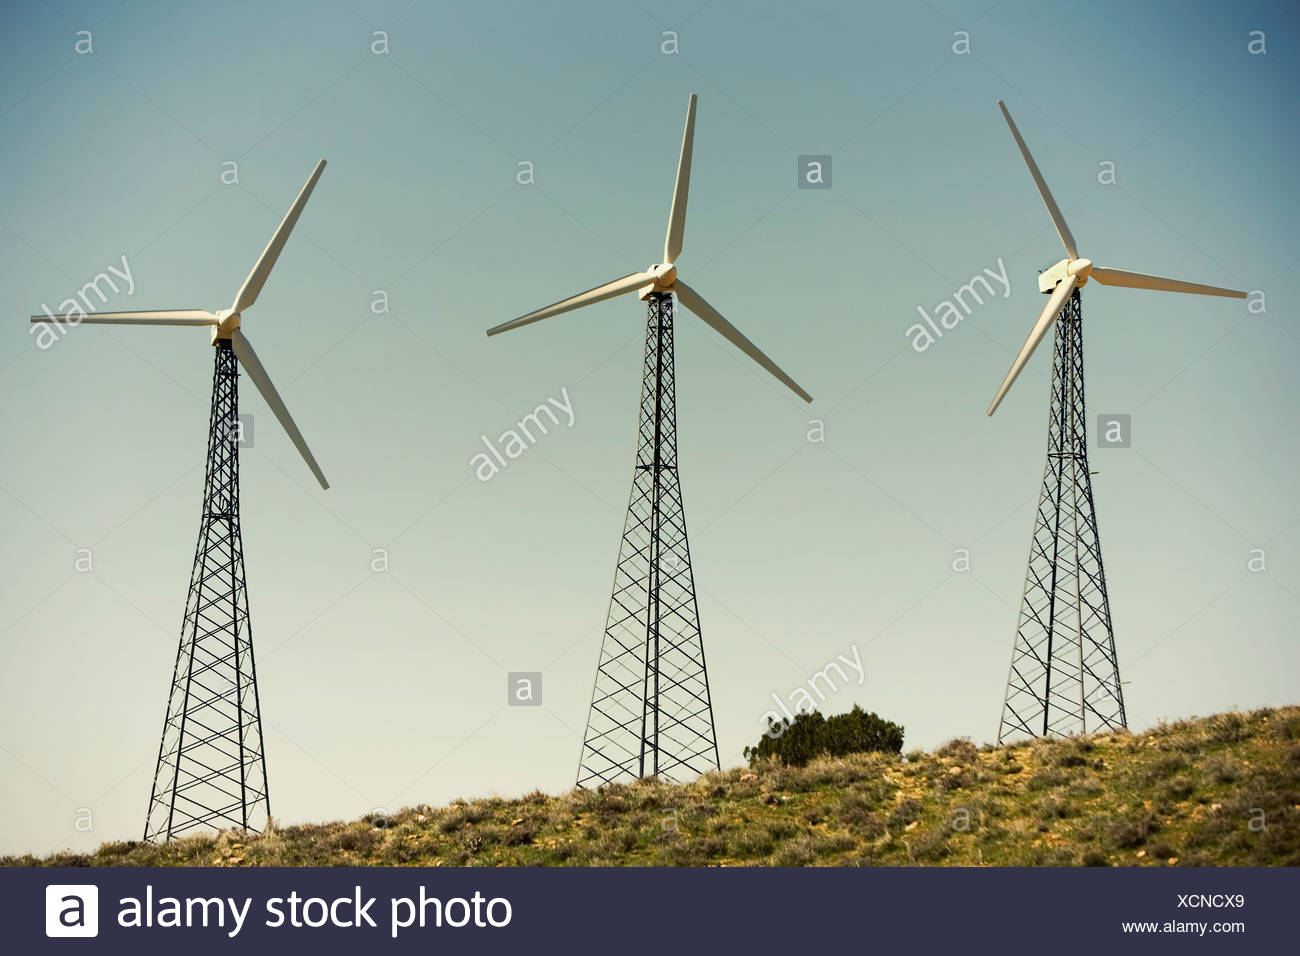 Wind turbines generating electricity - Stock Image